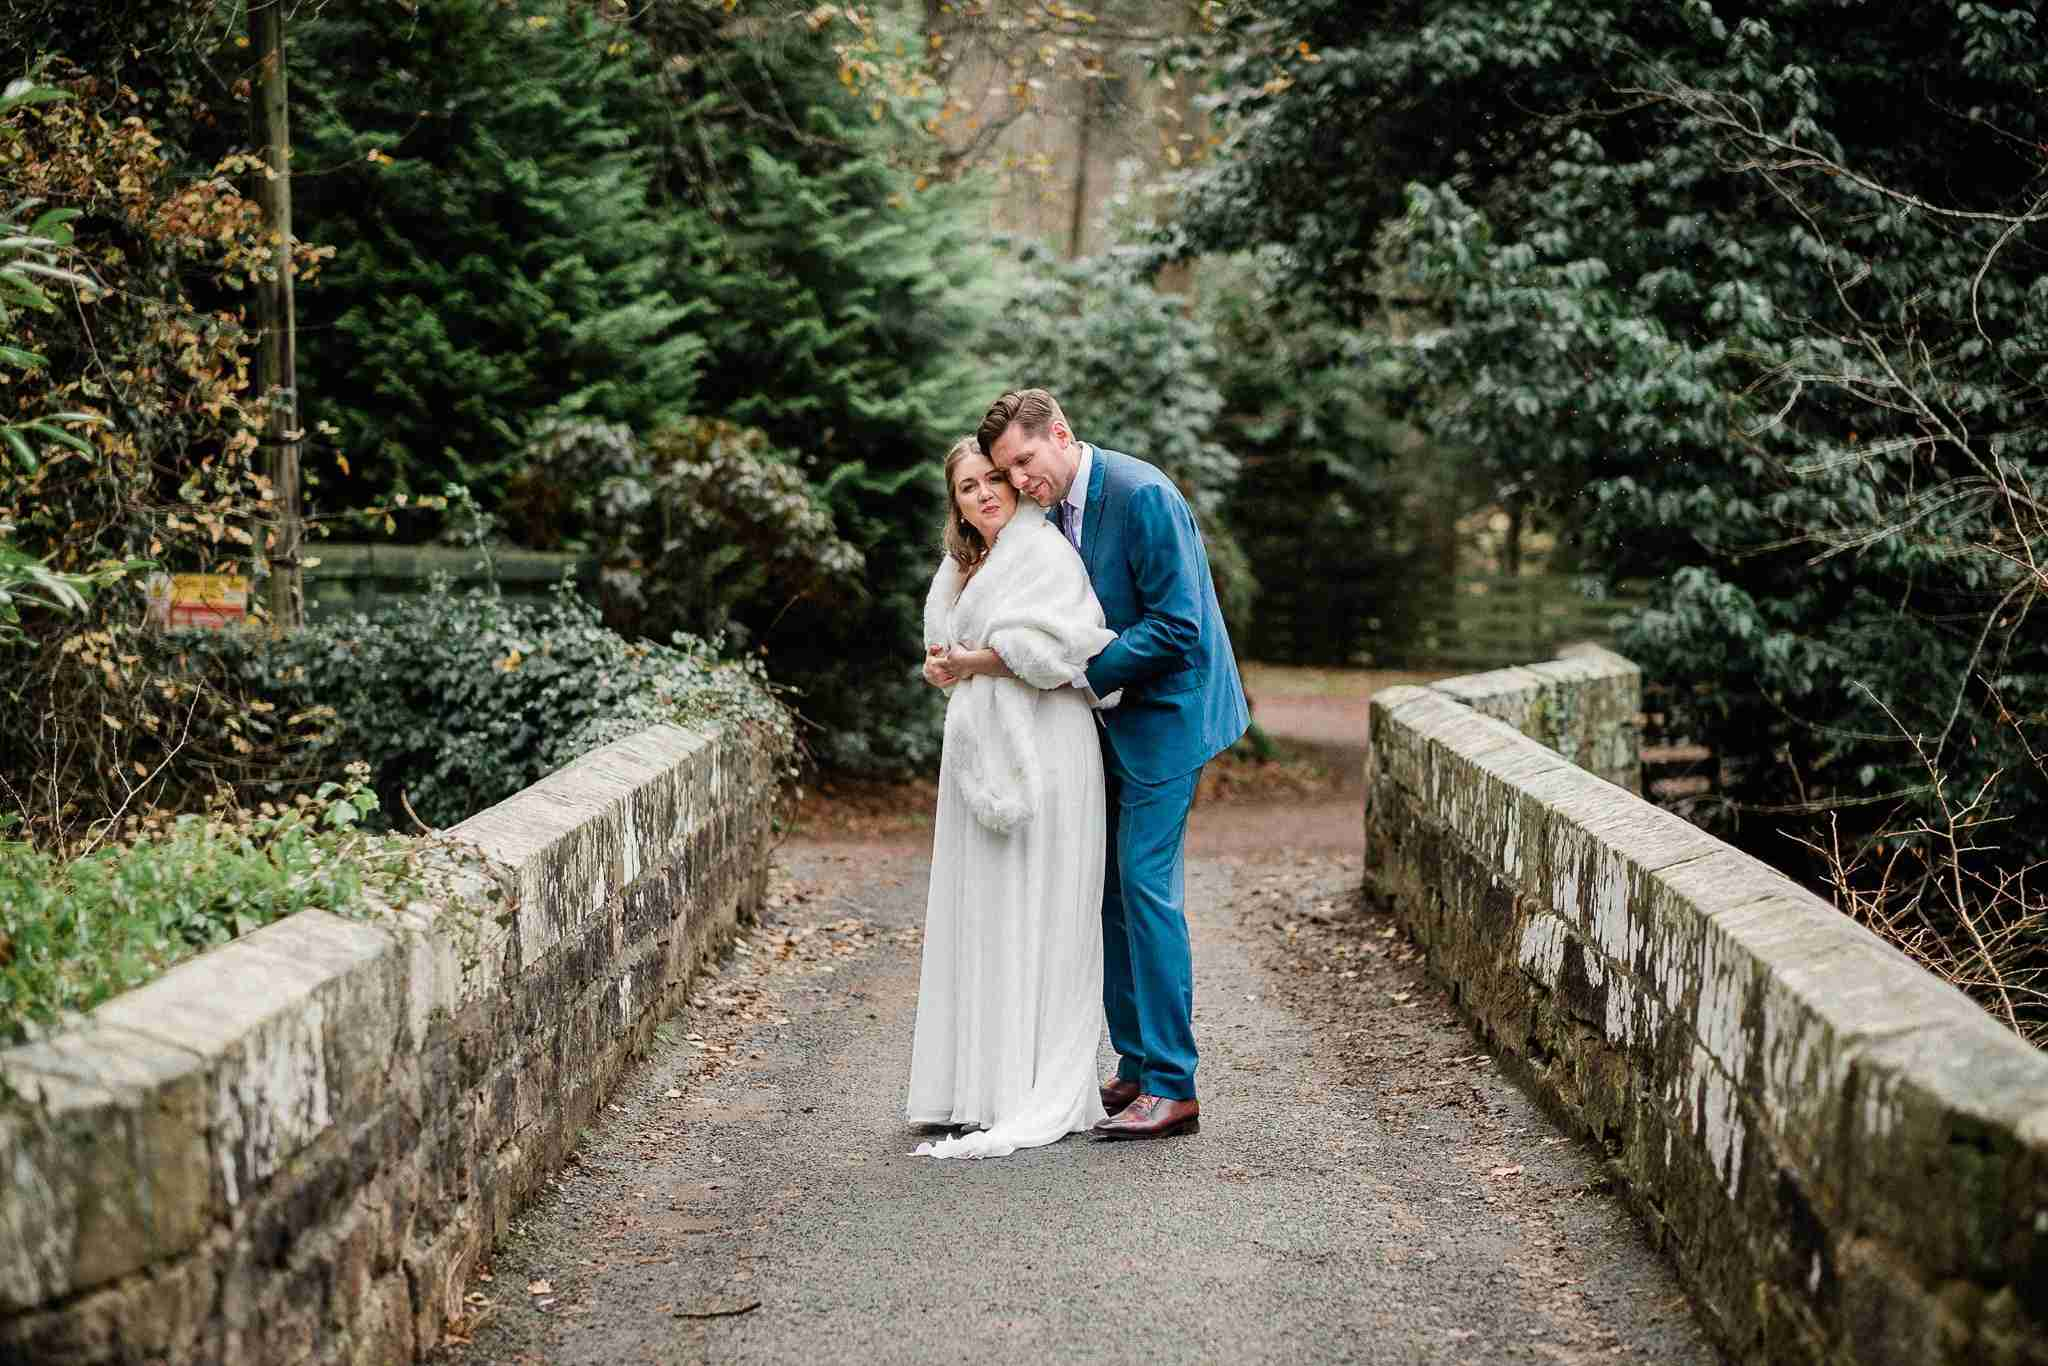 Wedding portrait - O + D, Dalhousie Castle, Edinburgh